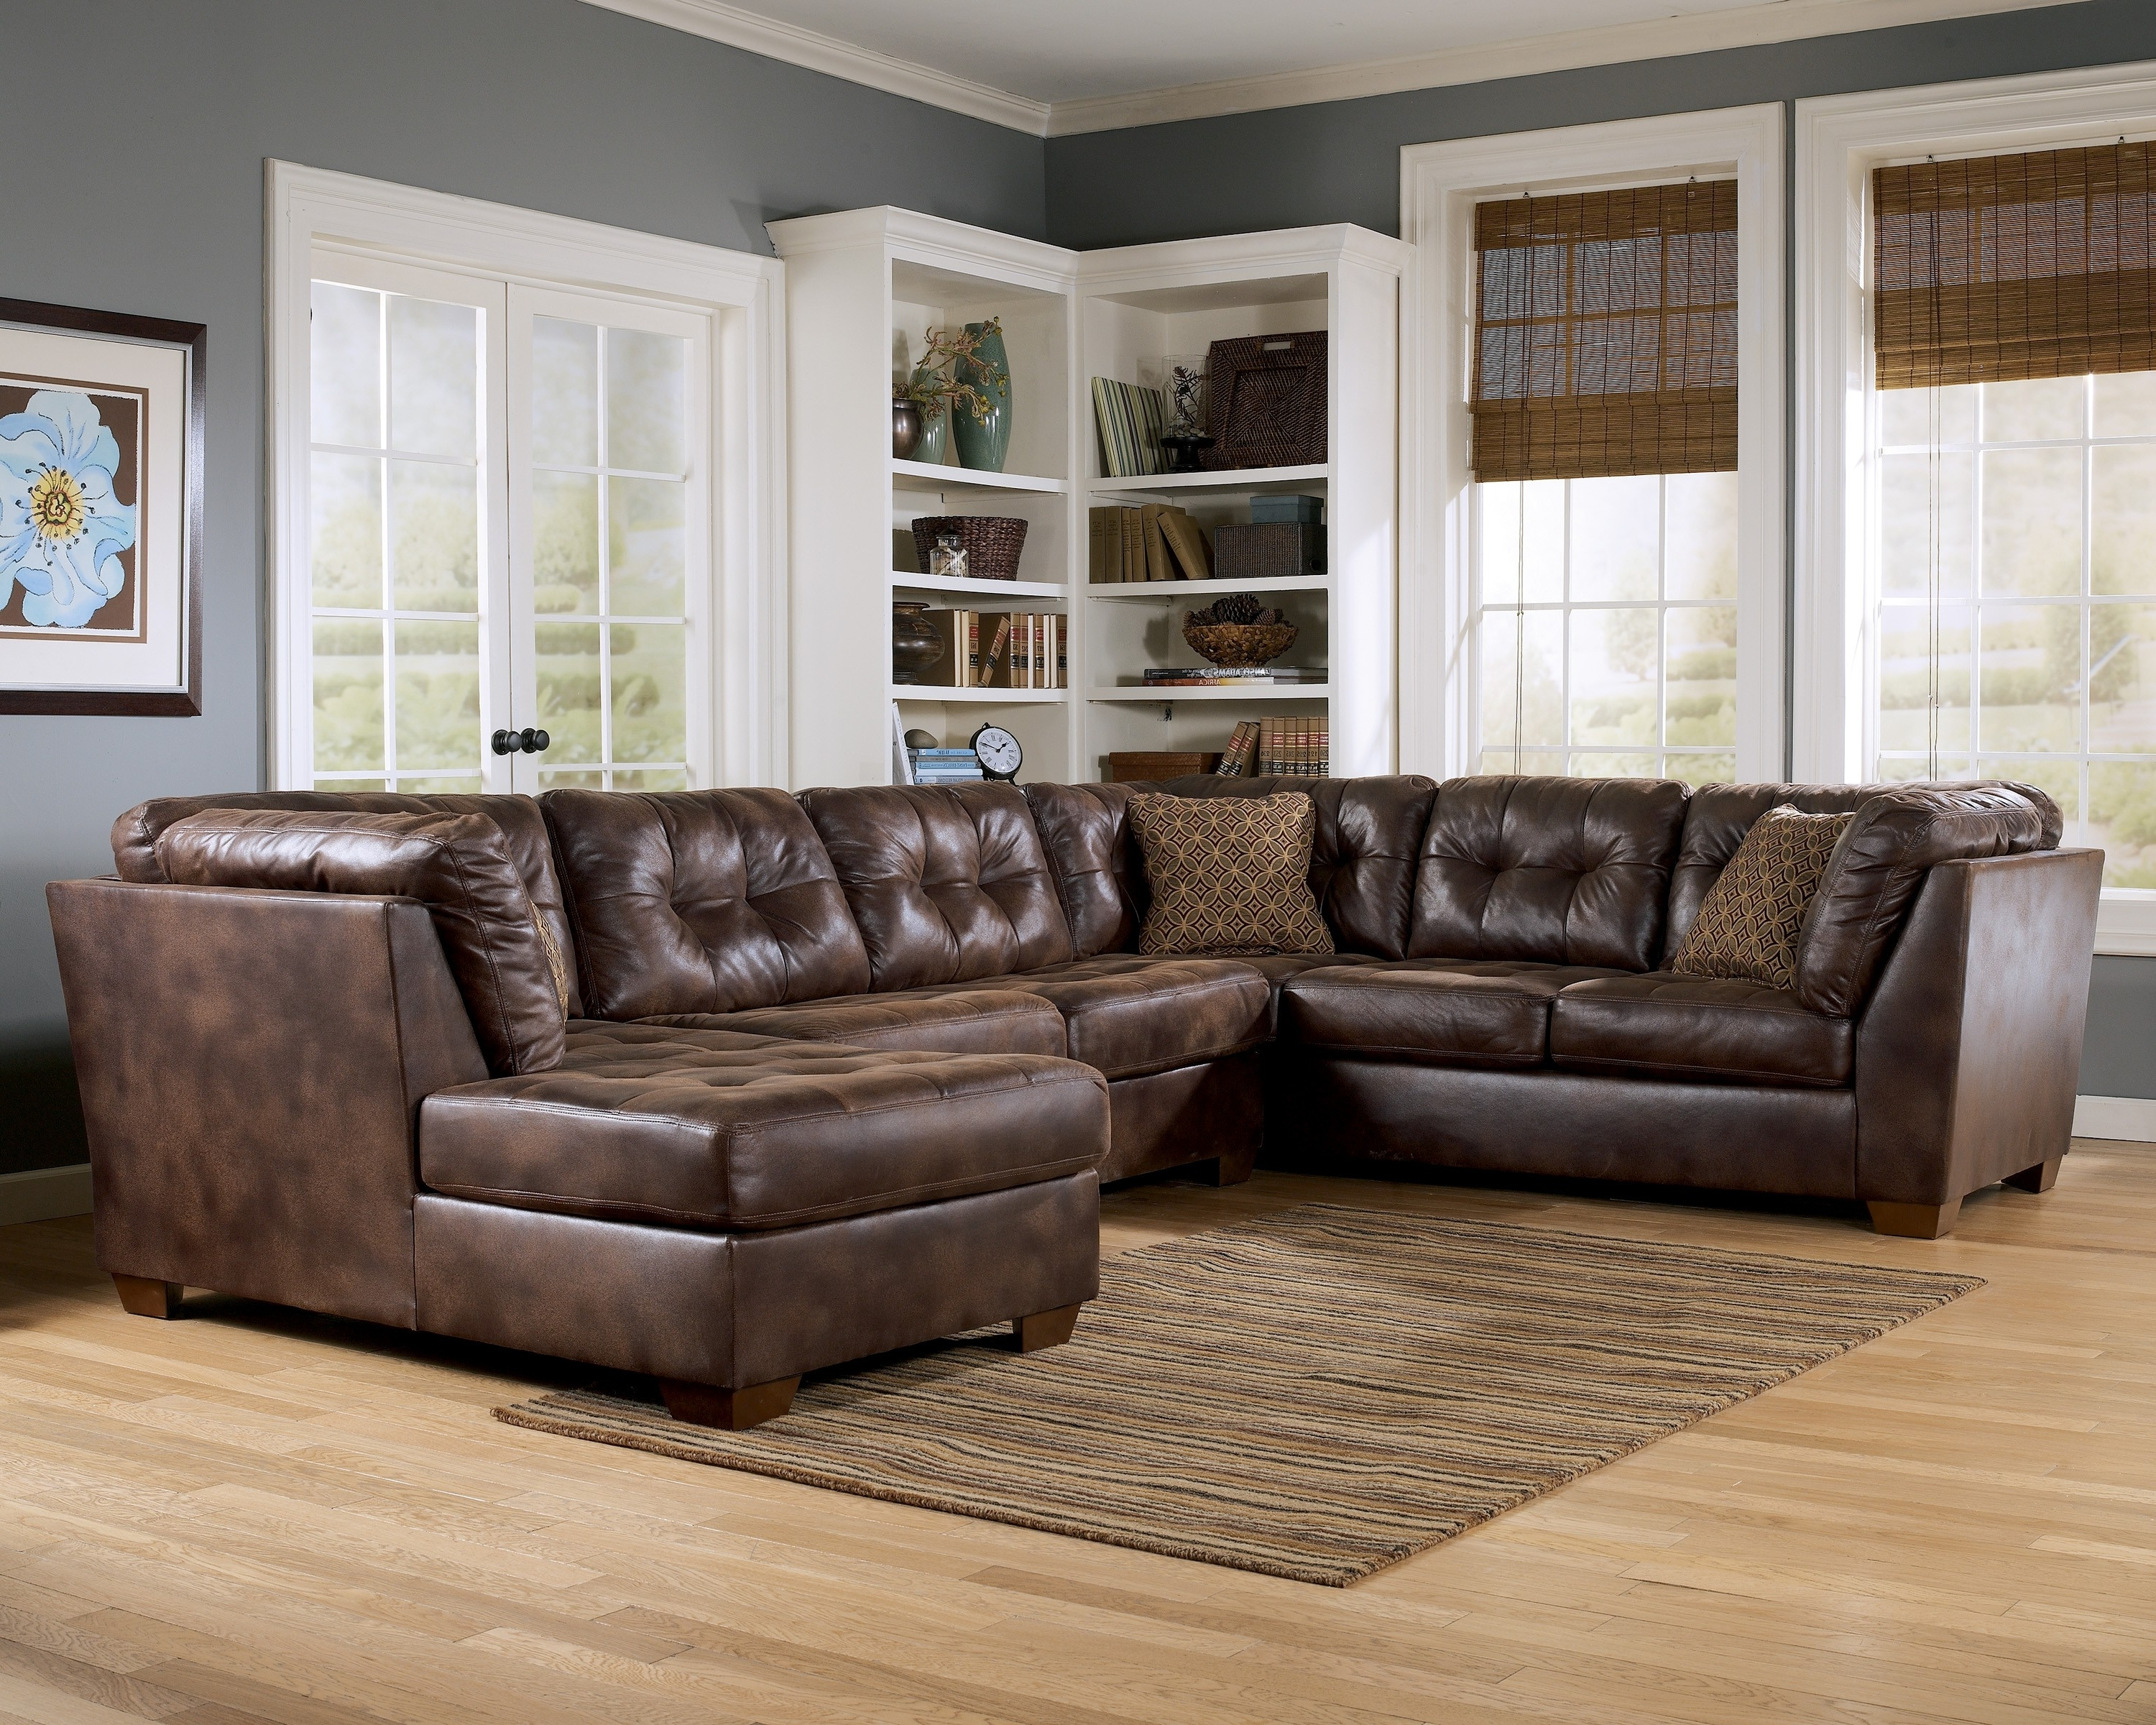 Most Popular Beautiful Cozy Sectional Sofas 54 About Remodel Sectional Sofas Inside Cozy Sectional Sofas (View 11 of 20)